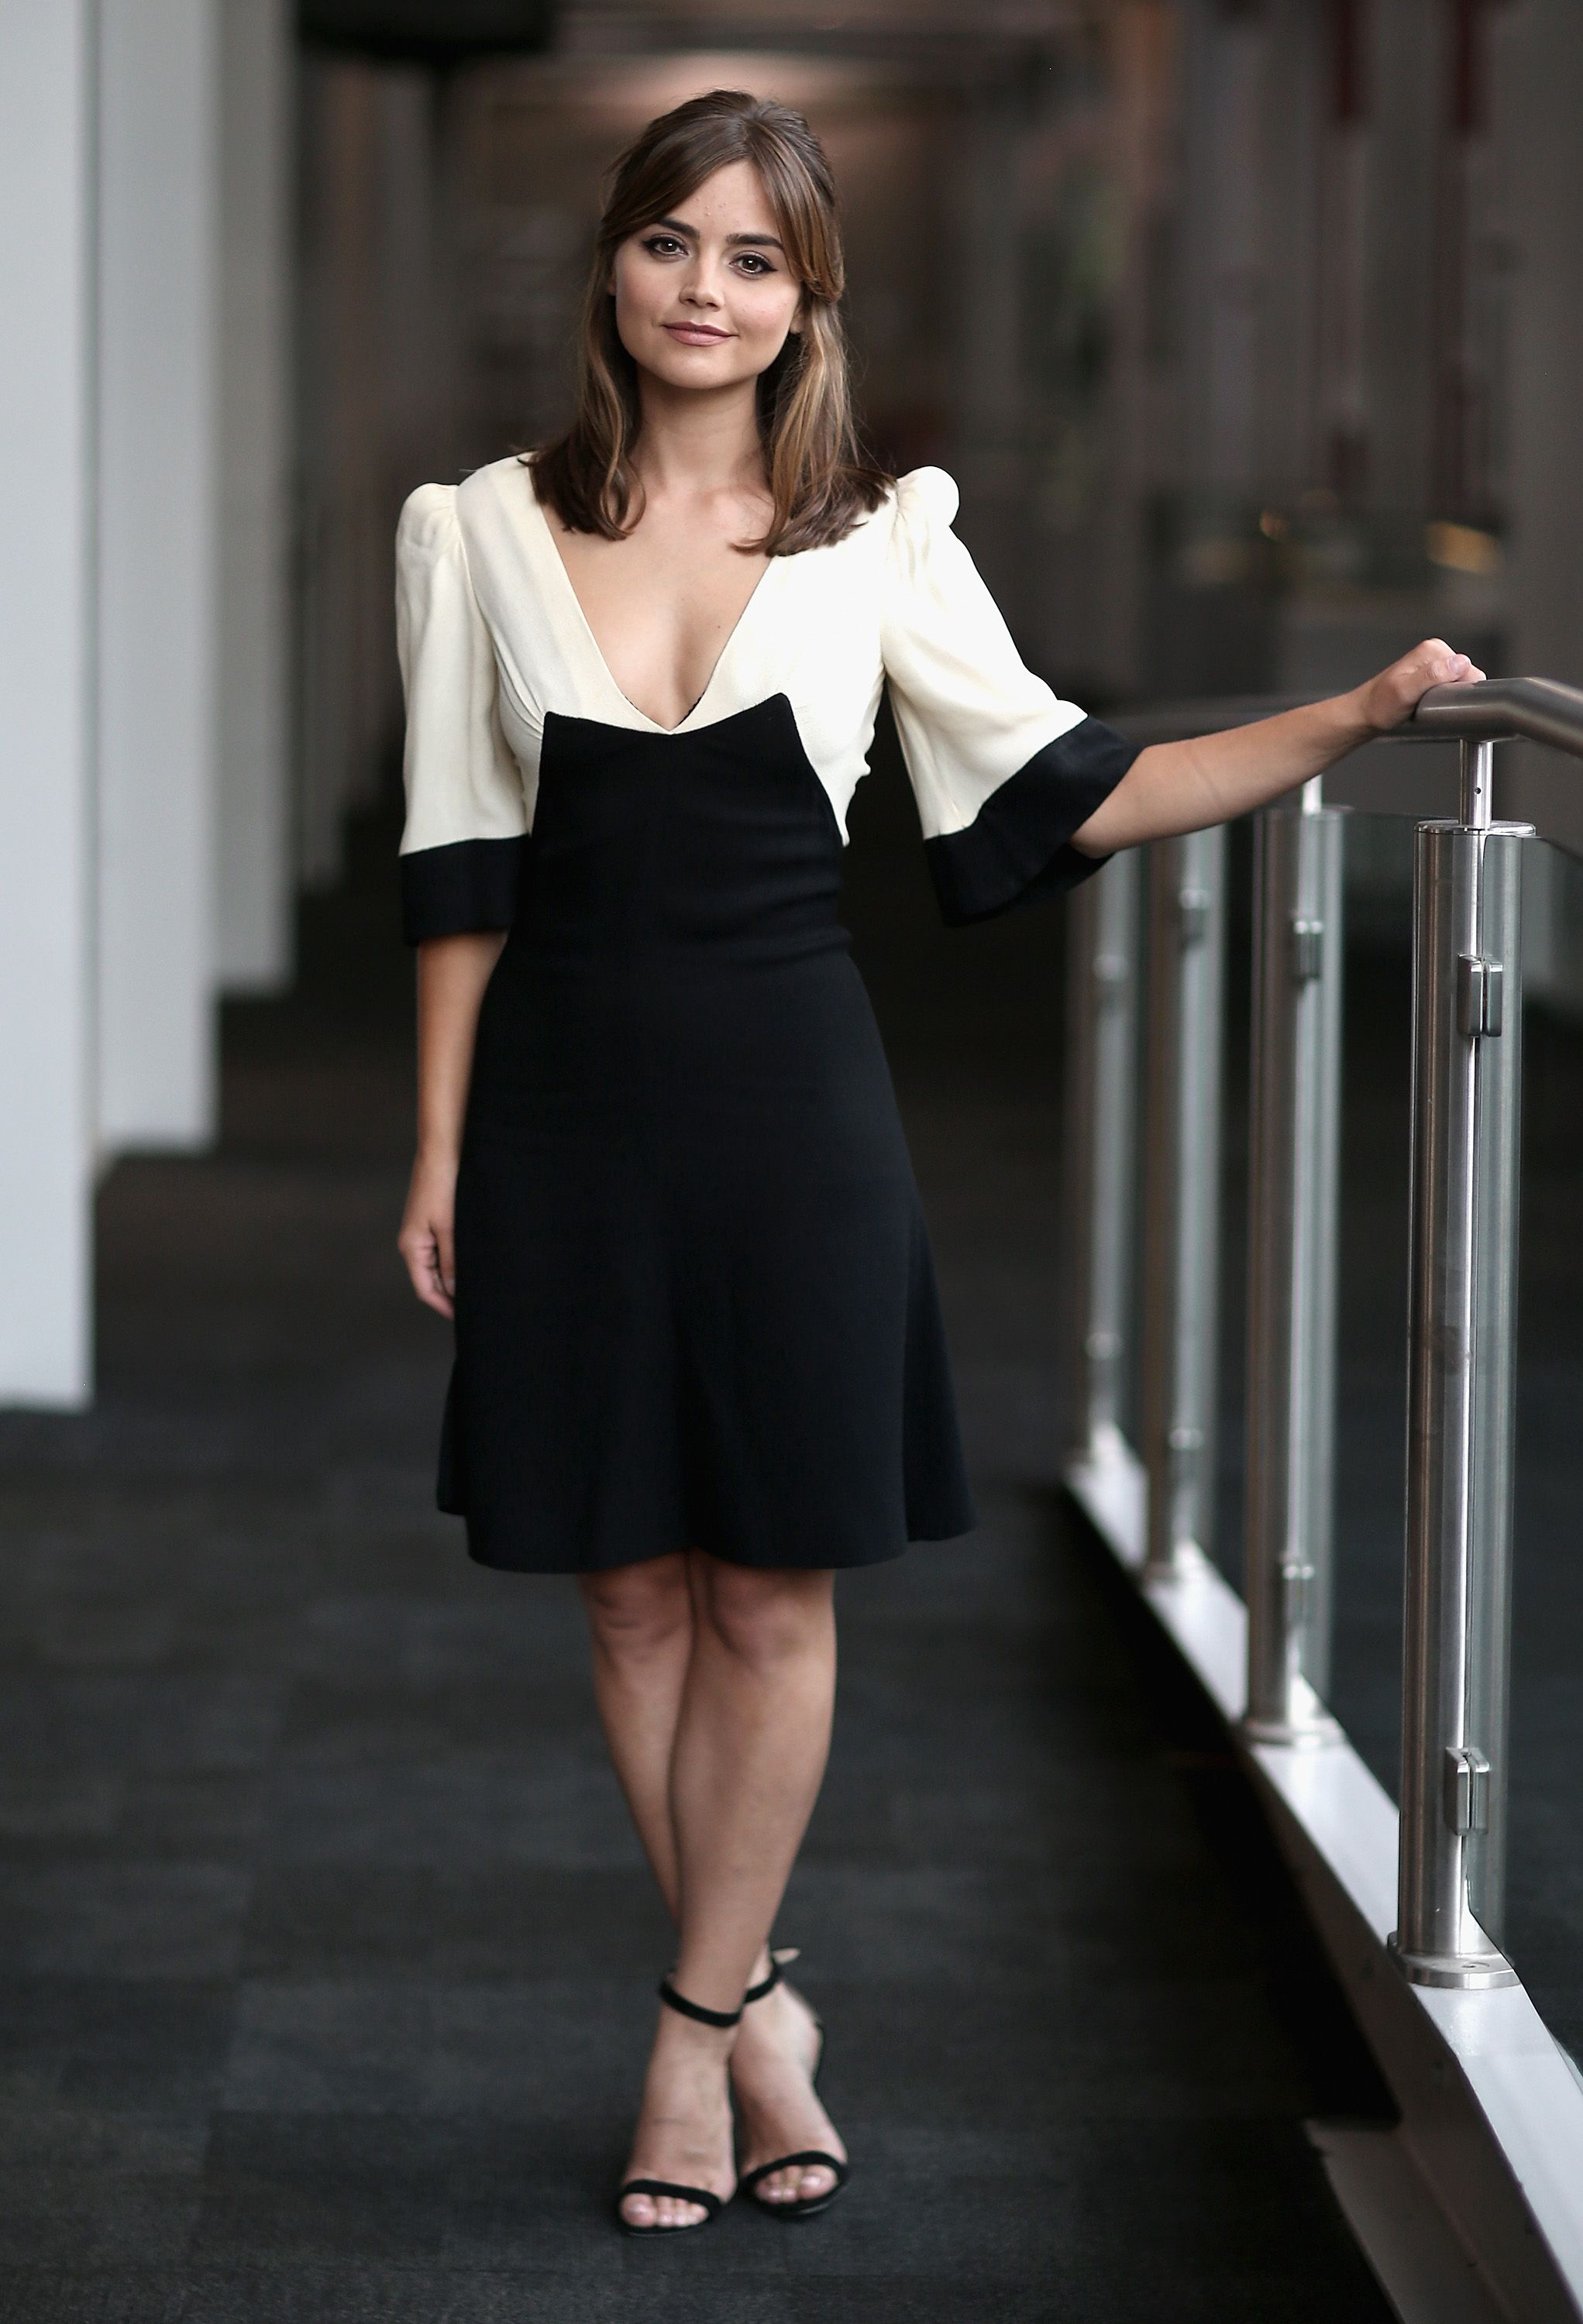 Discussion on this topic: Marysia Kay, jenna-coleman-born-1986/